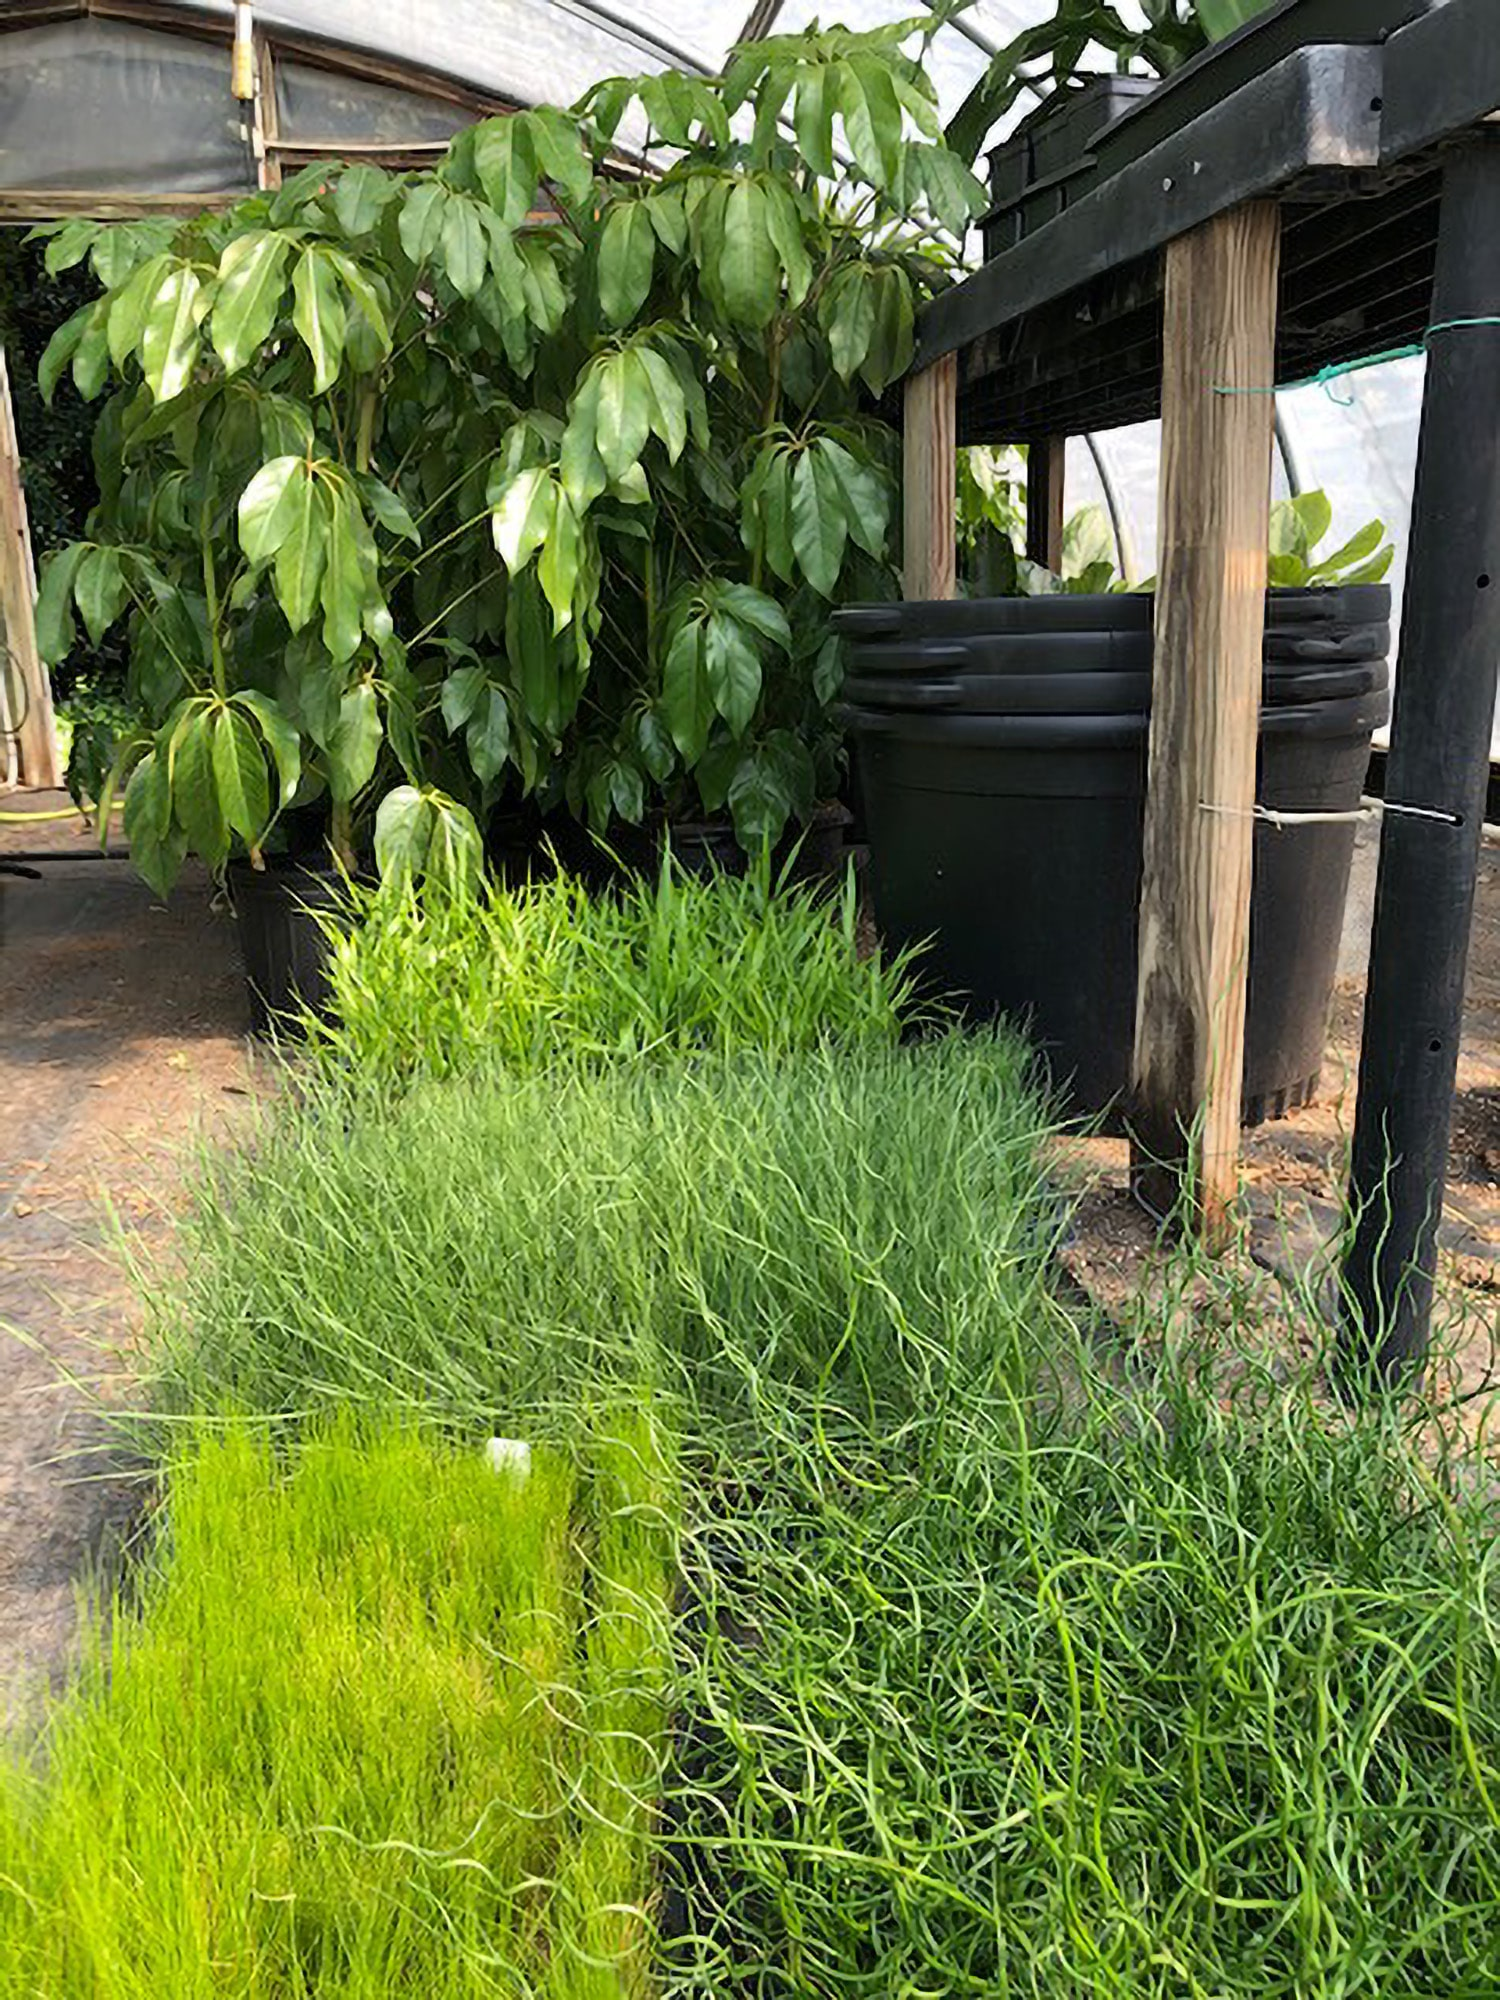 View of grasses being grown inside the greenhouse.